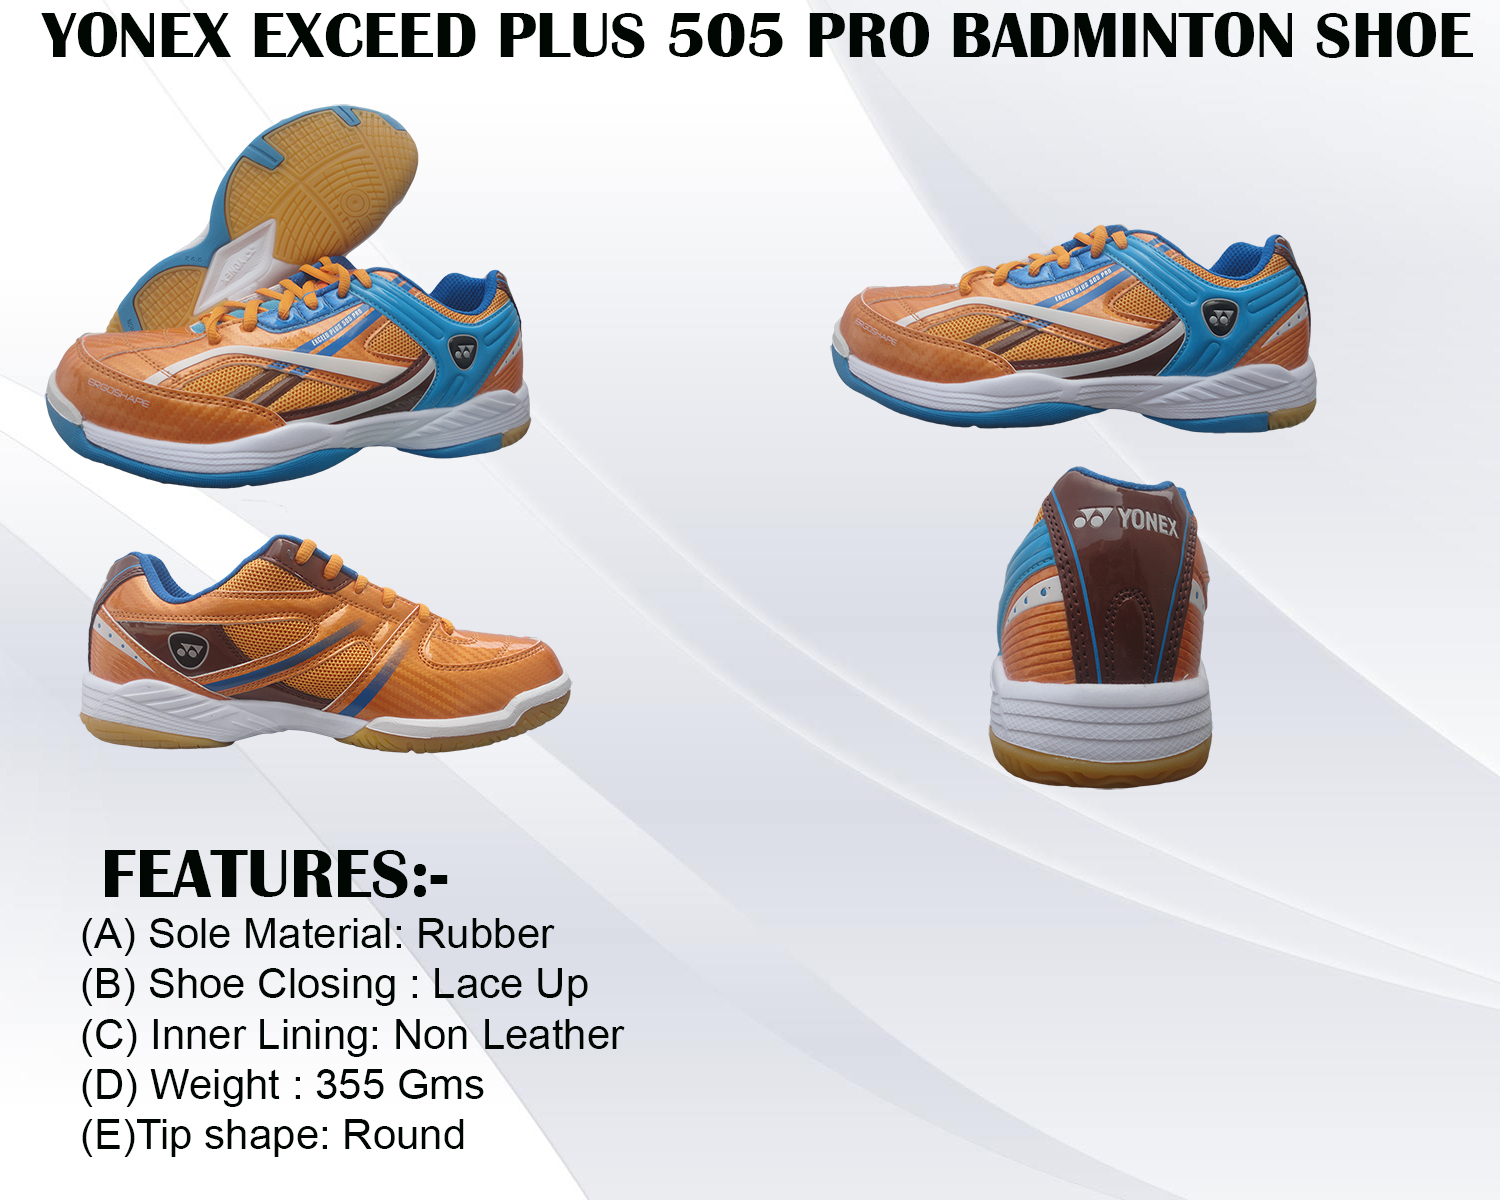 Yonex Exceed Plus 505 Pro Badminton Shoe Yellow and sky blue